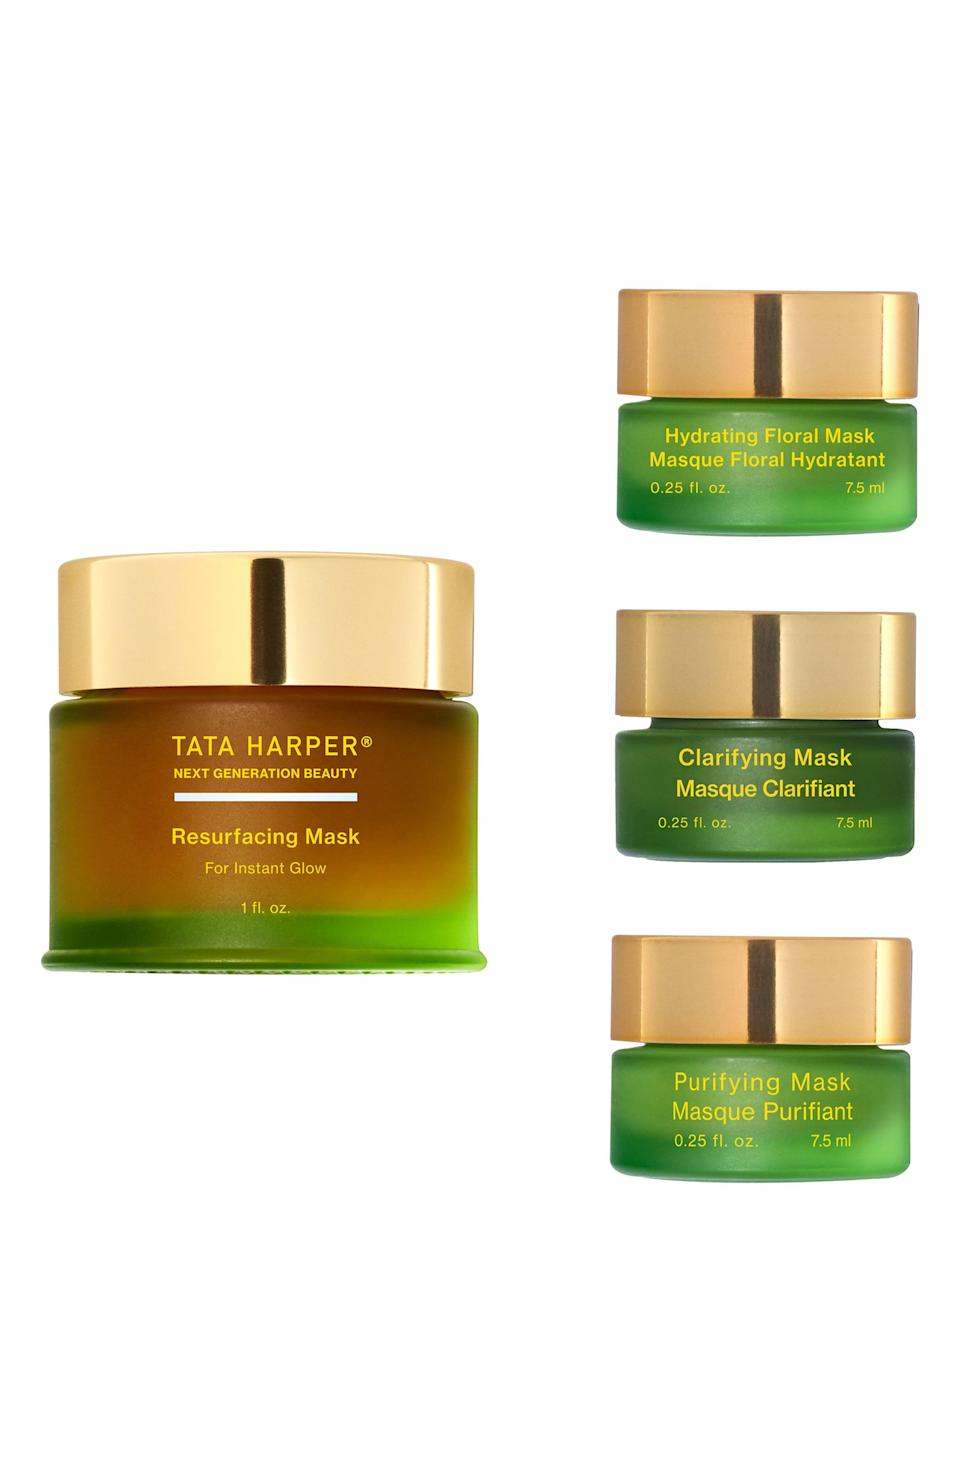 """<p><strong>Tata Harper Skincare</strong></p><p>nordstrom.com</p><p><strong>$78.00</strong></p><p><a href=""""https://go.redirectingat.com?id=74968X1596630&url=https%3A%2F%2Fwww.nordstrom.com%2Fs%2Ftata-harper-skincare-resurfacing-mask-mix-mask-set-126-value%2F5607364&sref=https%3A%2F%2Fwww.elle.com%2Fbeauty%2Fg36944650%2Fnorstrom-anniversary-beauty-sale-2021%2F"""" rel=""""nofollow noopener"""" target=""""_blank"""" data-ylk=""""slk:Shop Now"""" class=""""link rapid-noclick-resp"""">Shop Now</a></p><p>Masking should be an Olympic sport, but in order to get the gold you need the right equipment. In this case, that means a trio of the most effective, best-loved face masks in the game.</p>"""